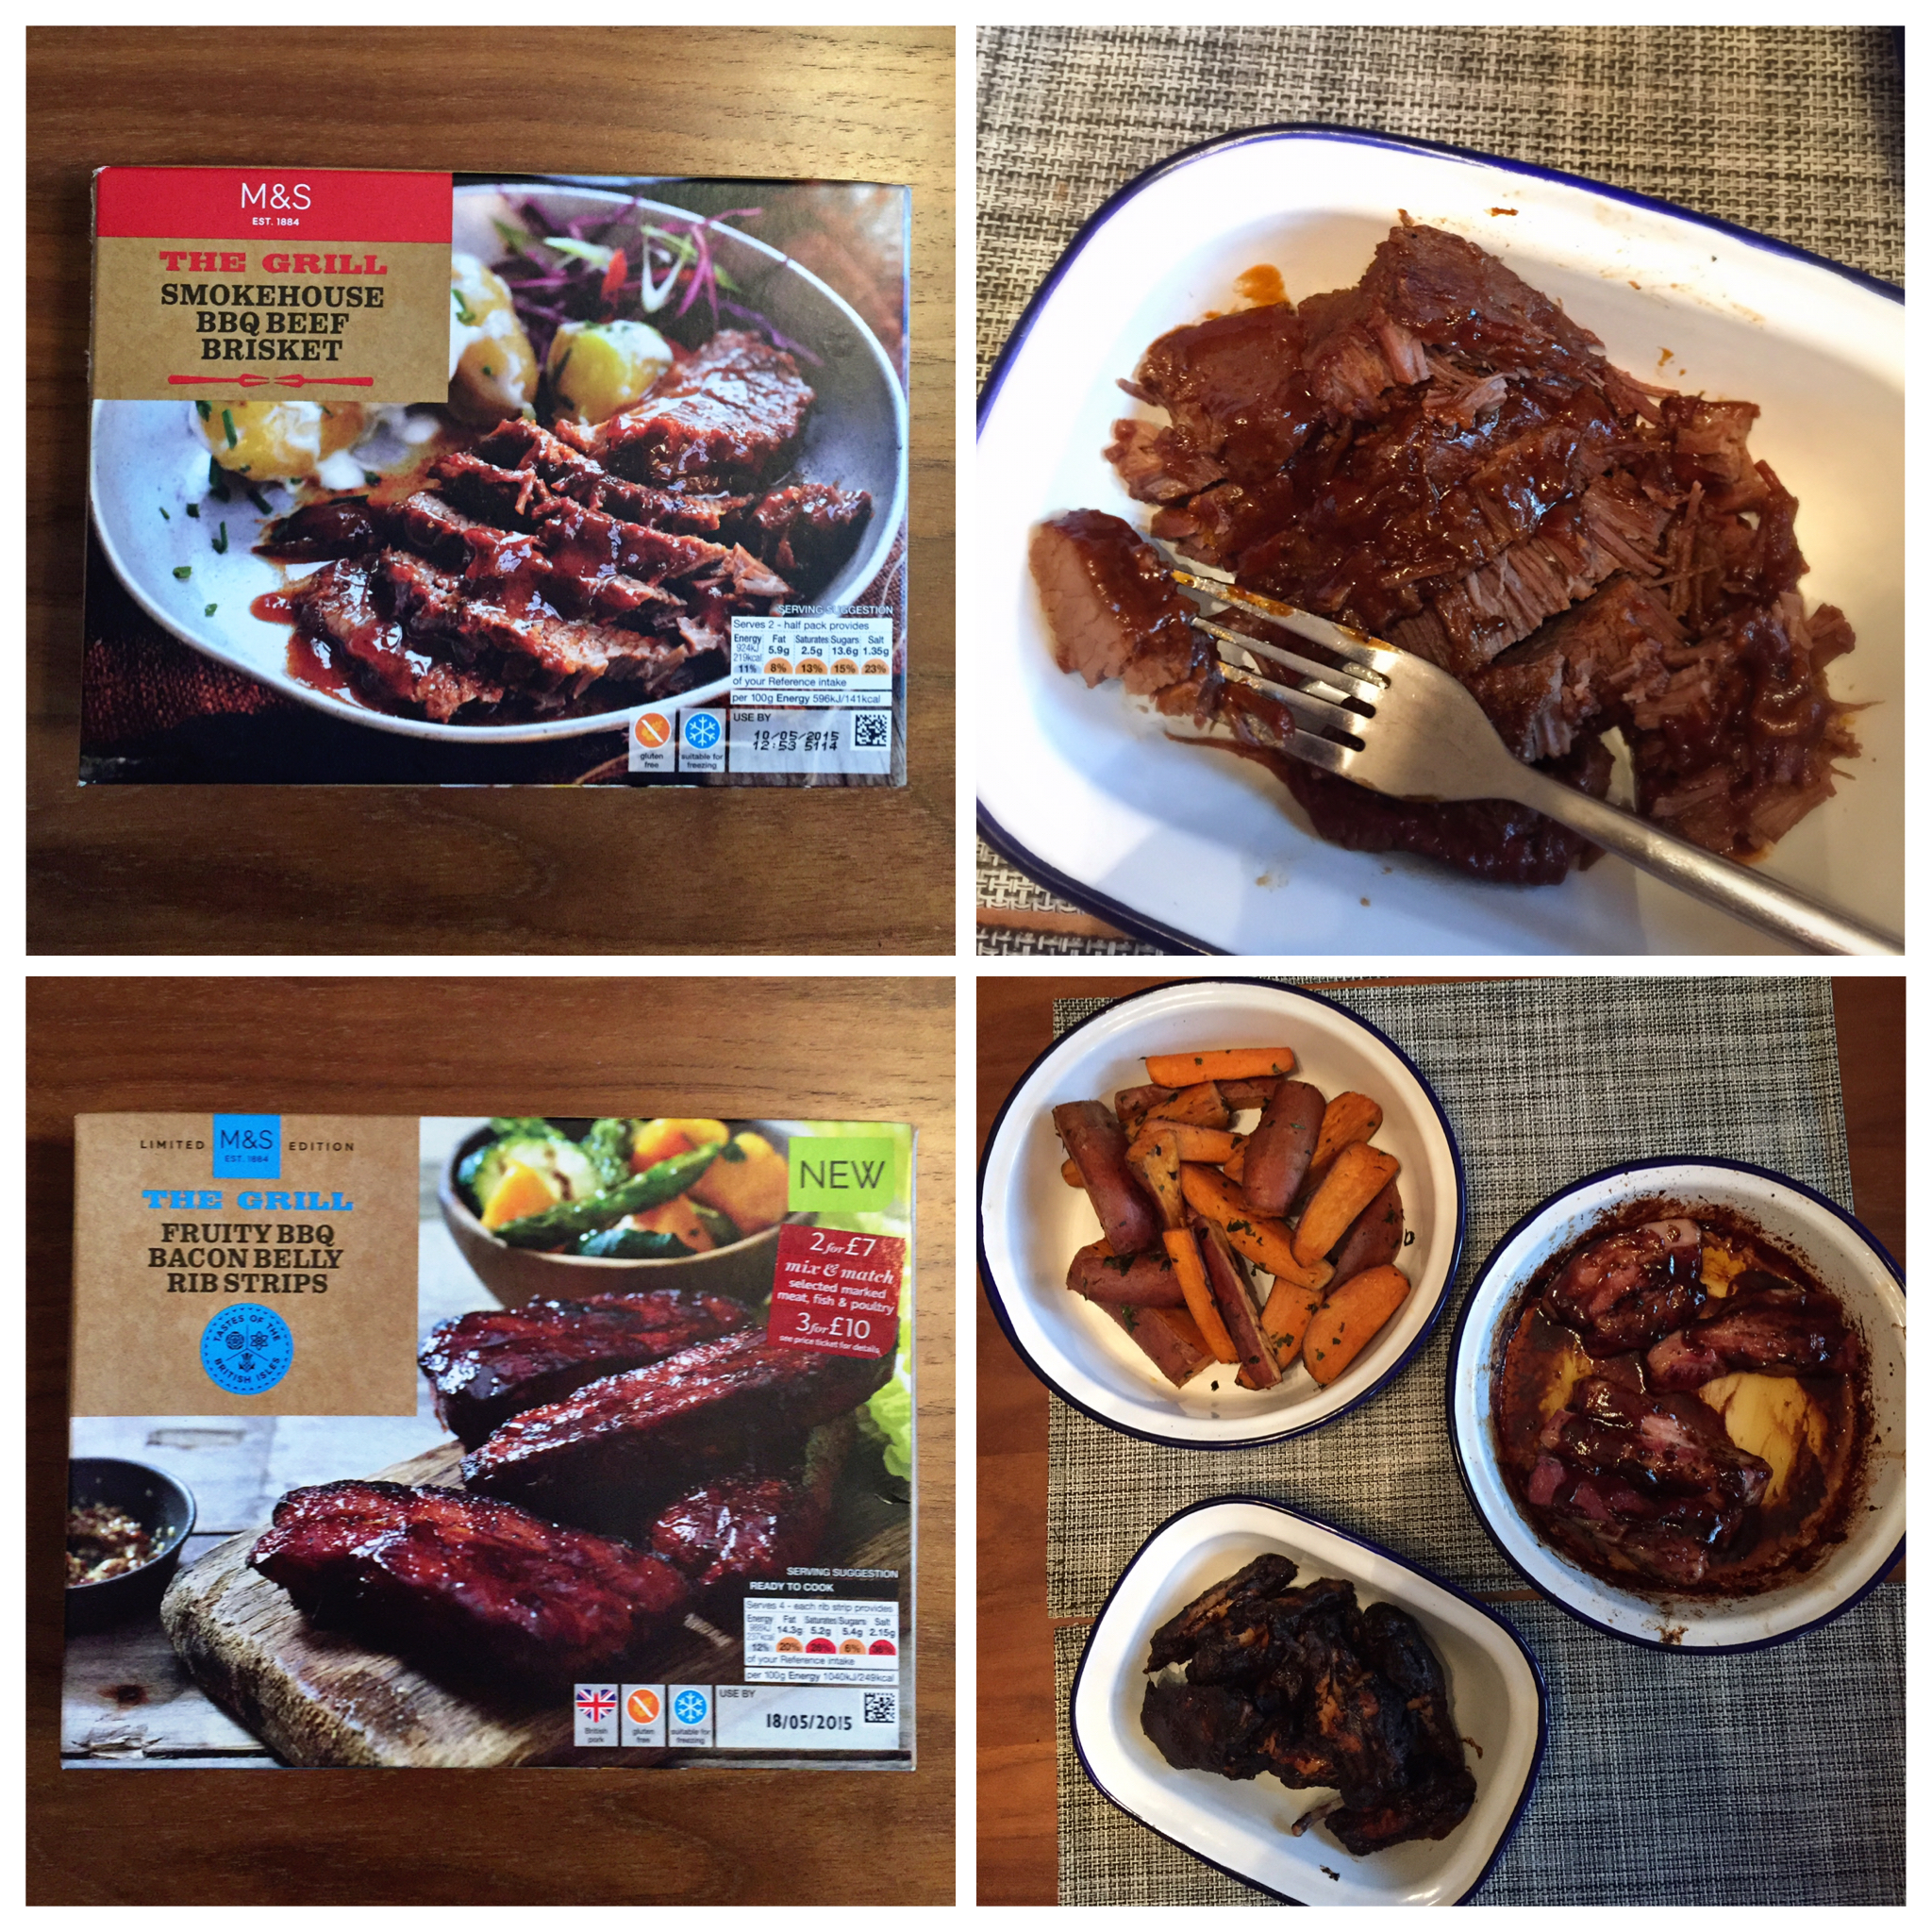 Tried and tested marks and spencers the grill range you cant beat a bit of brisket or ribs or wings negle Gallery